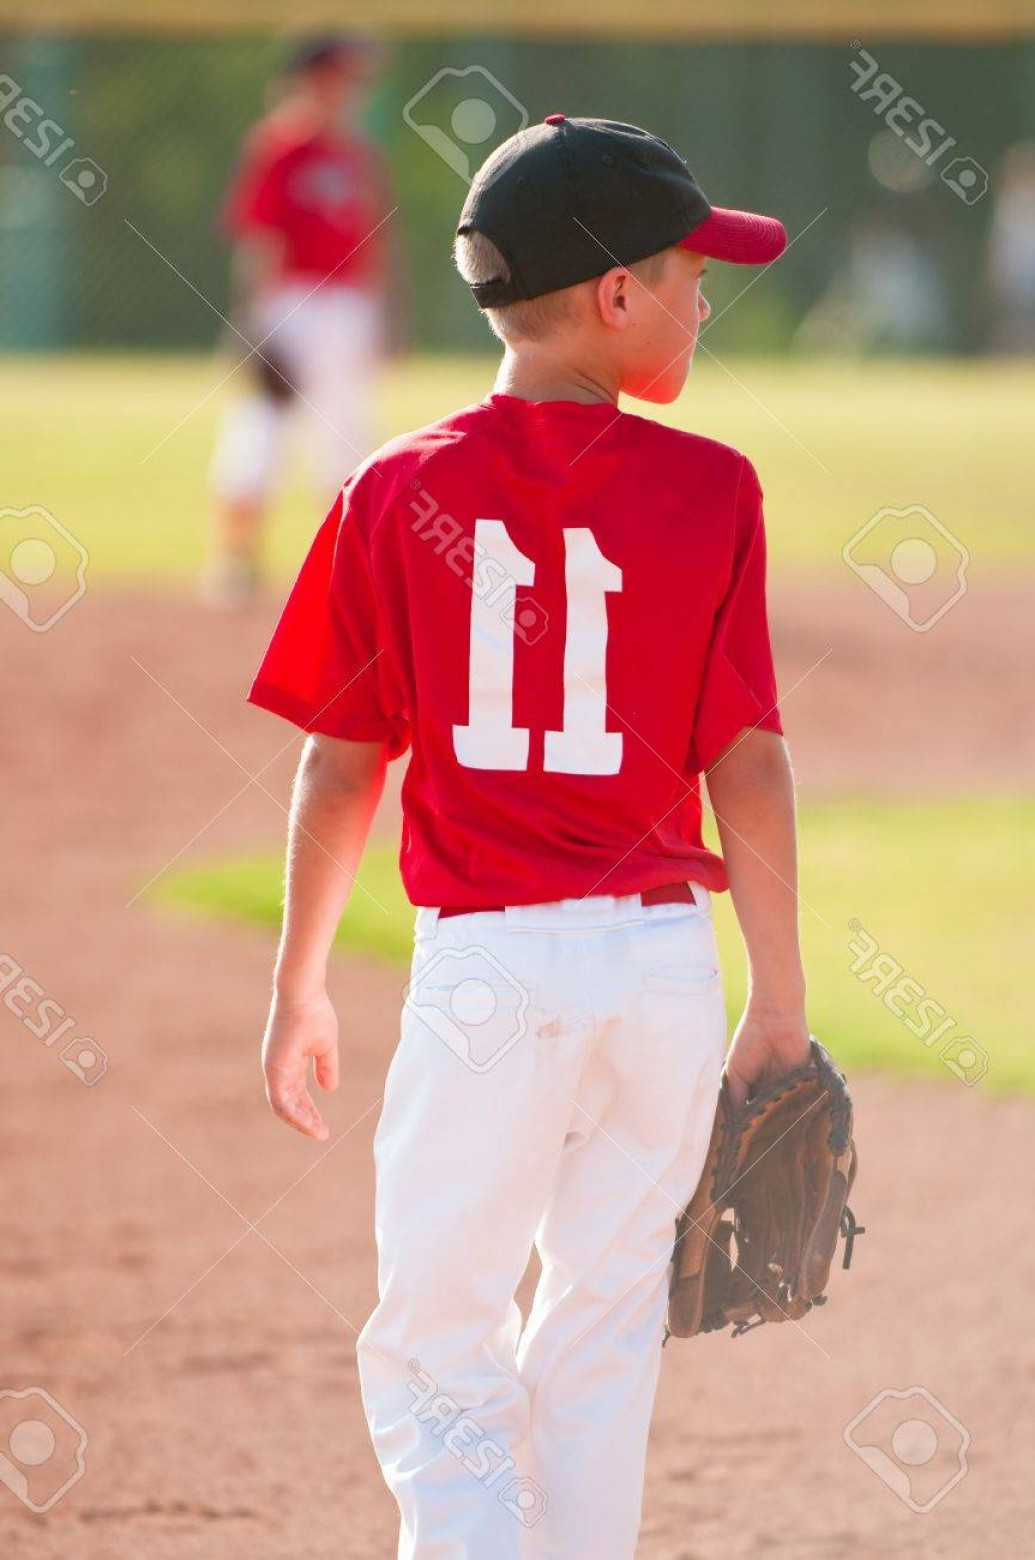 Little League Baseball Vector Logo No Text: Photolittle League Baseball Player From Behind